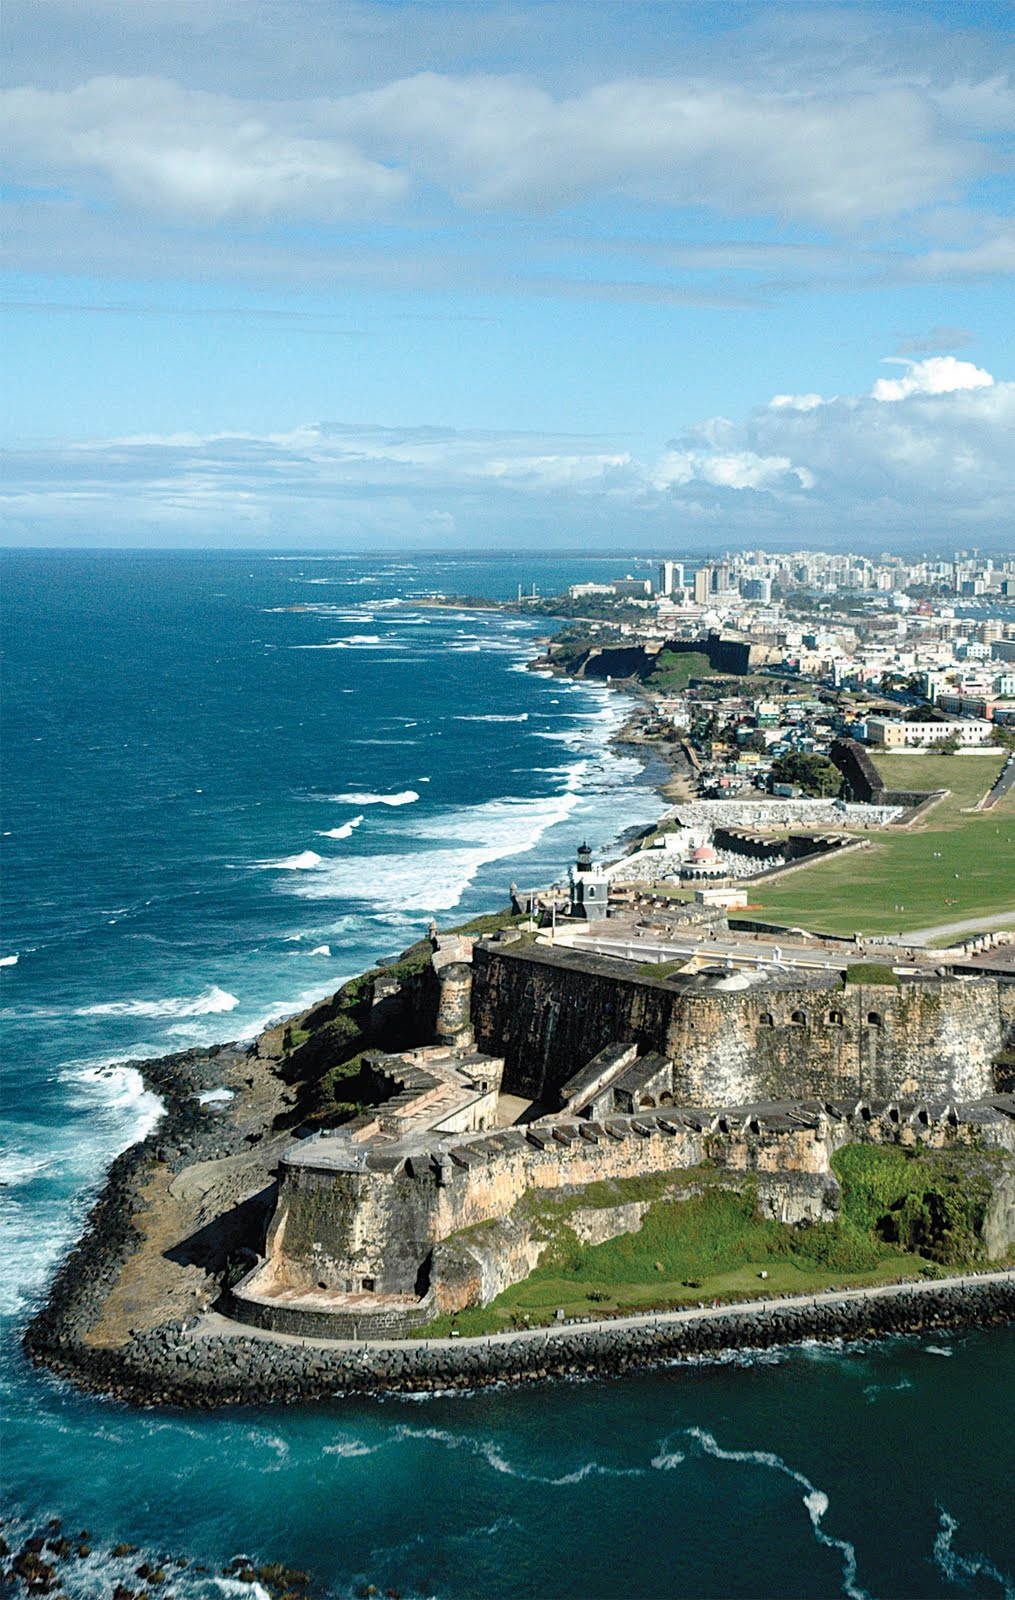 rico puerto morro san juan visions rican beautiful spanish castle puertorico night pr ricans isla dvd there love see places